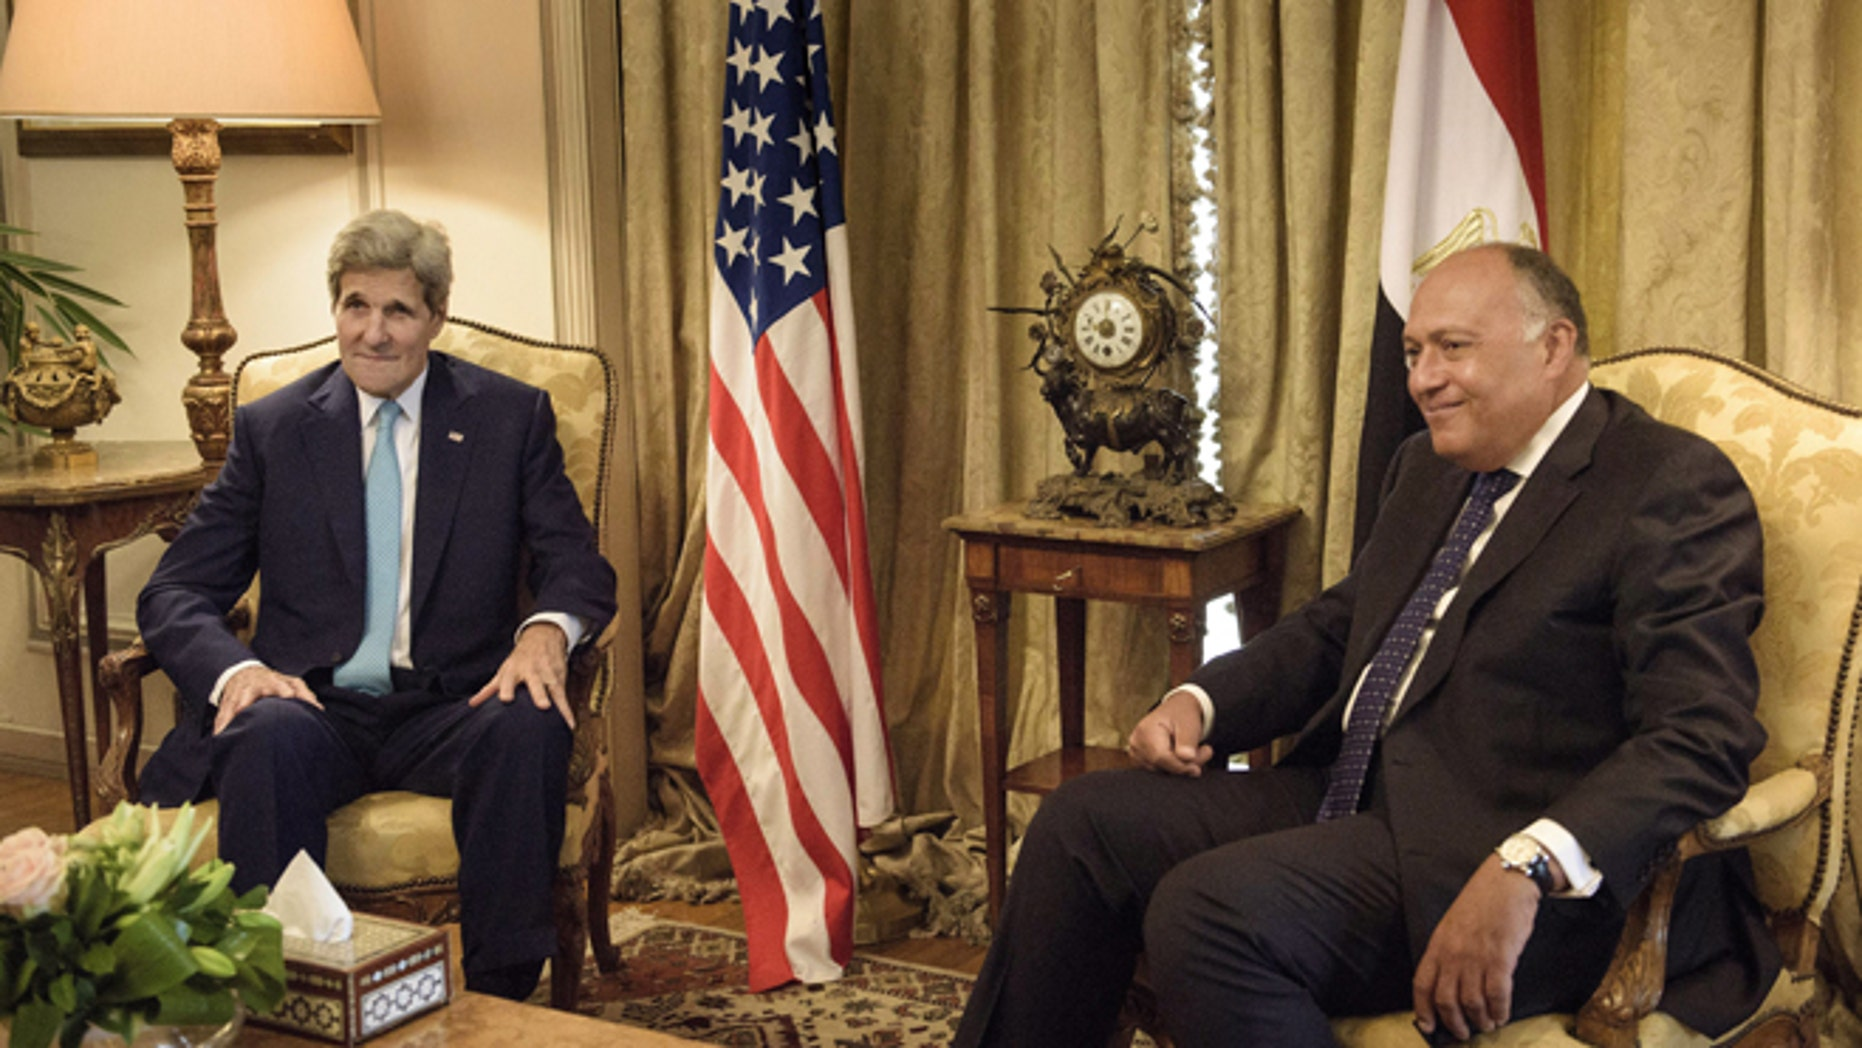 Aug. 2, 2015: U.S. Secretary of State John Kerry, left, speaks with Egypt's Foreign Minister Sameh Shoukry, before a meeting at the Ministry of Foreign Affairs in Cairo, Egypt.